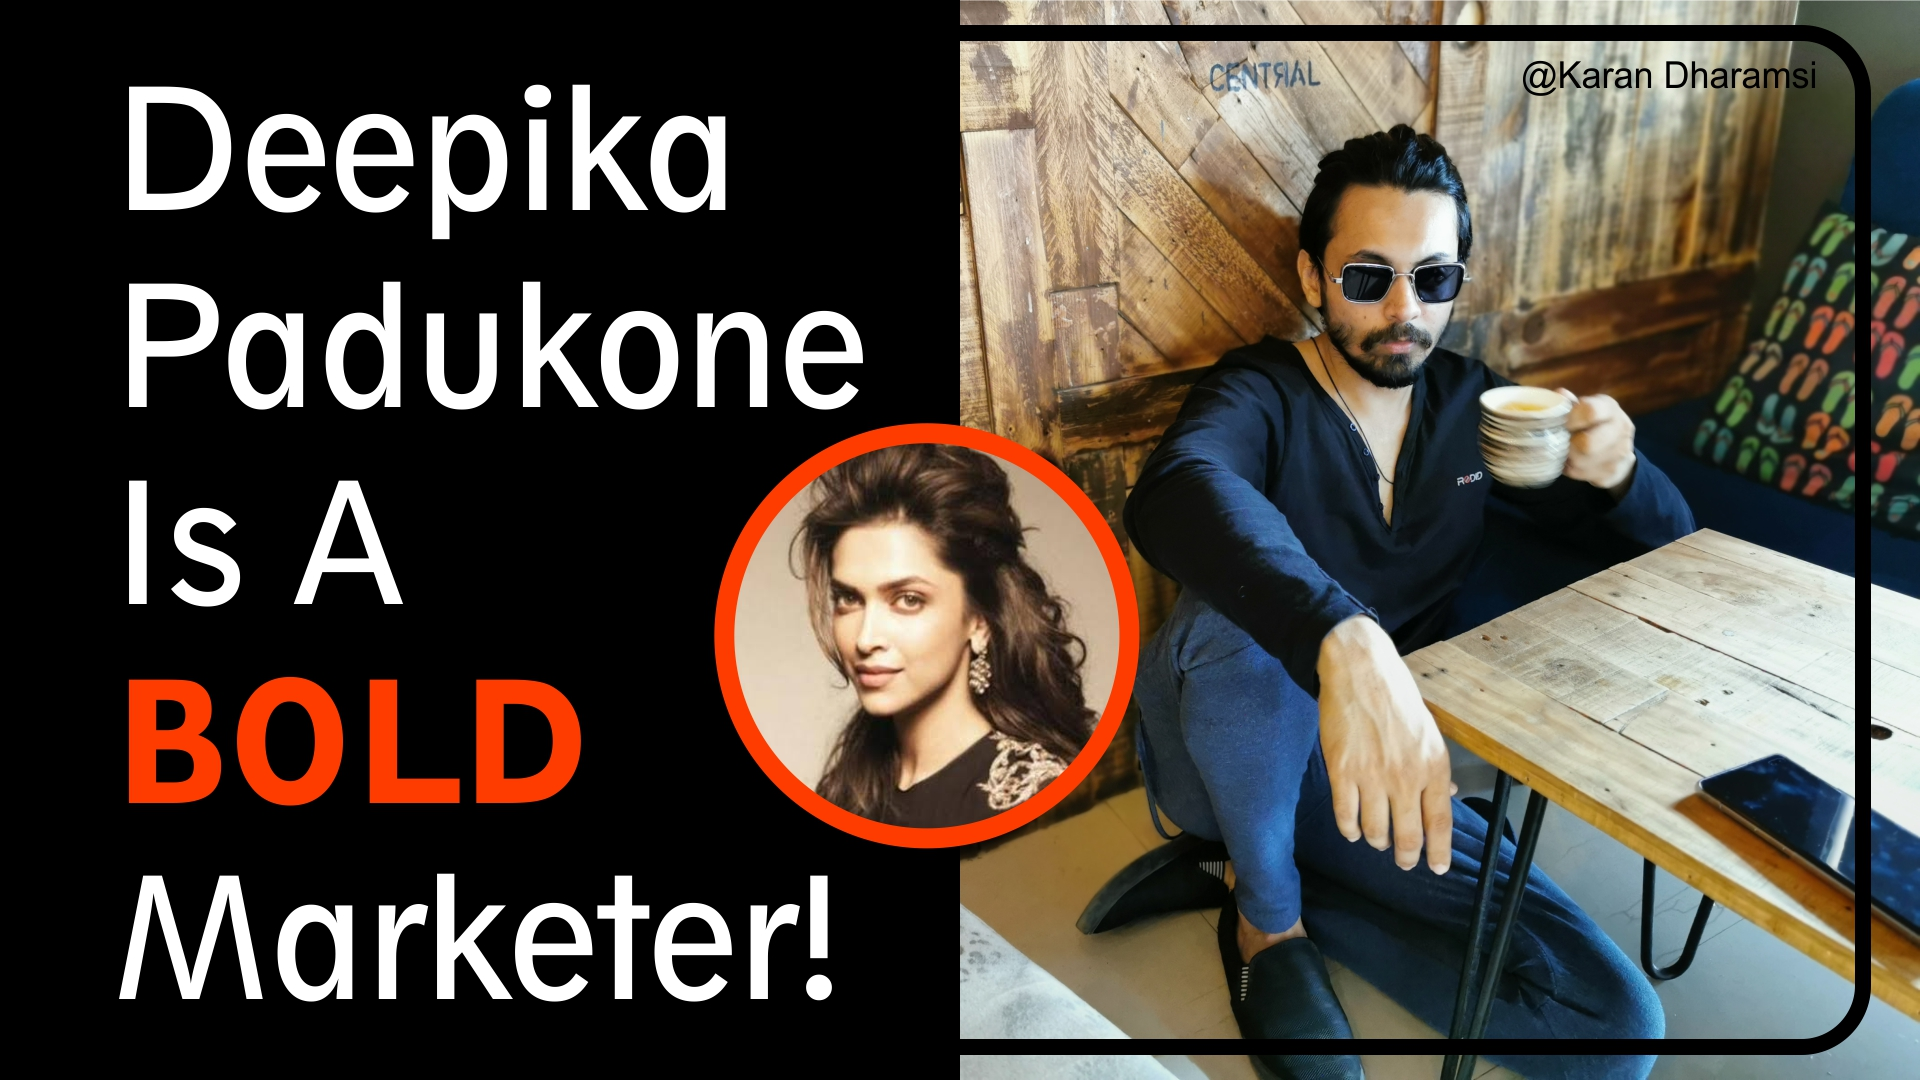 Deepika Padukone The Marketing Nerdz Karan Dharamsi